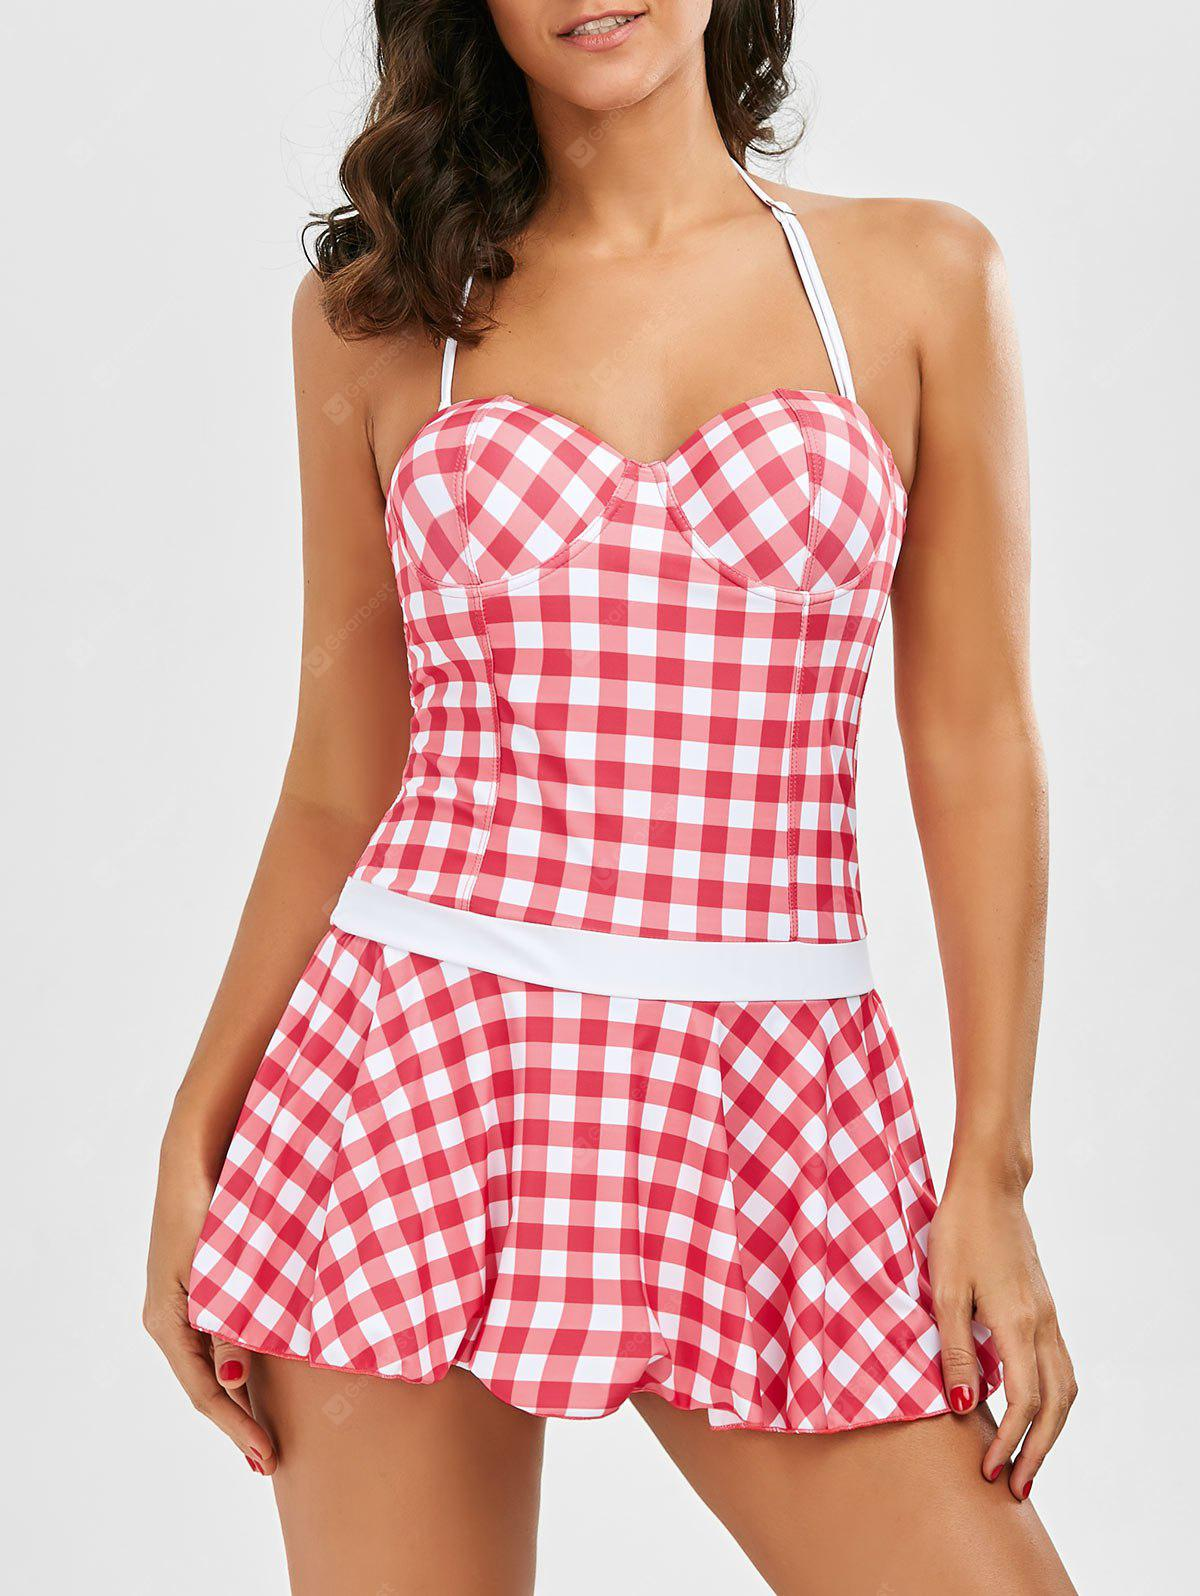 Plaid Push Up Skirted One Piece Swimsuit